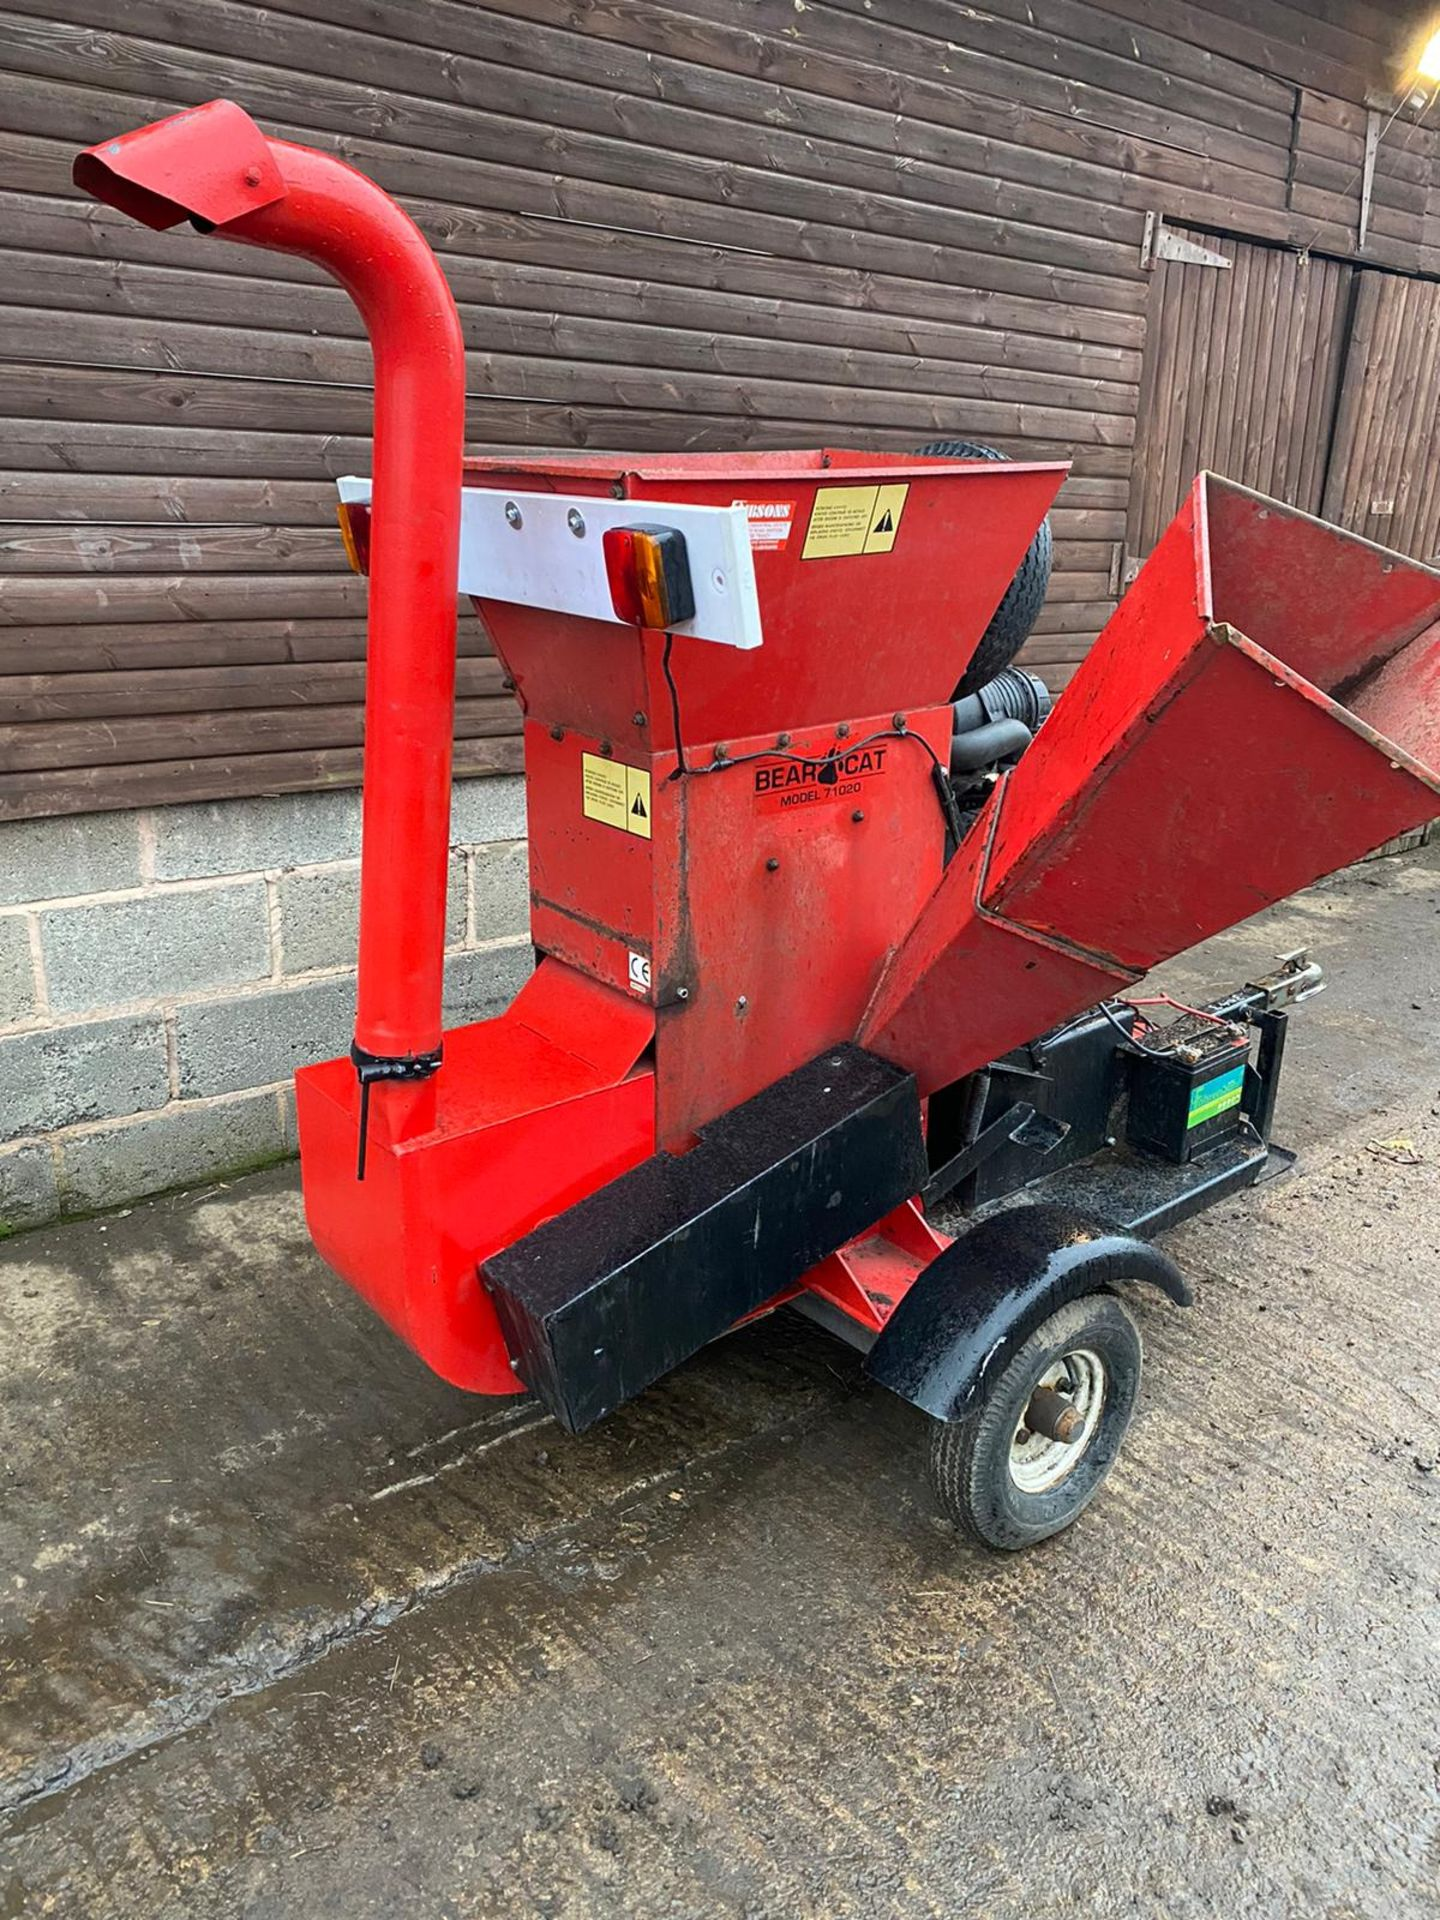 BEARCAT 71020 TOWABLE WOOD CHIPPER, KEY START 27HP PETROL ENGINE, ROAD TOWABLE *PLUS VAT* - Image 4 of 6